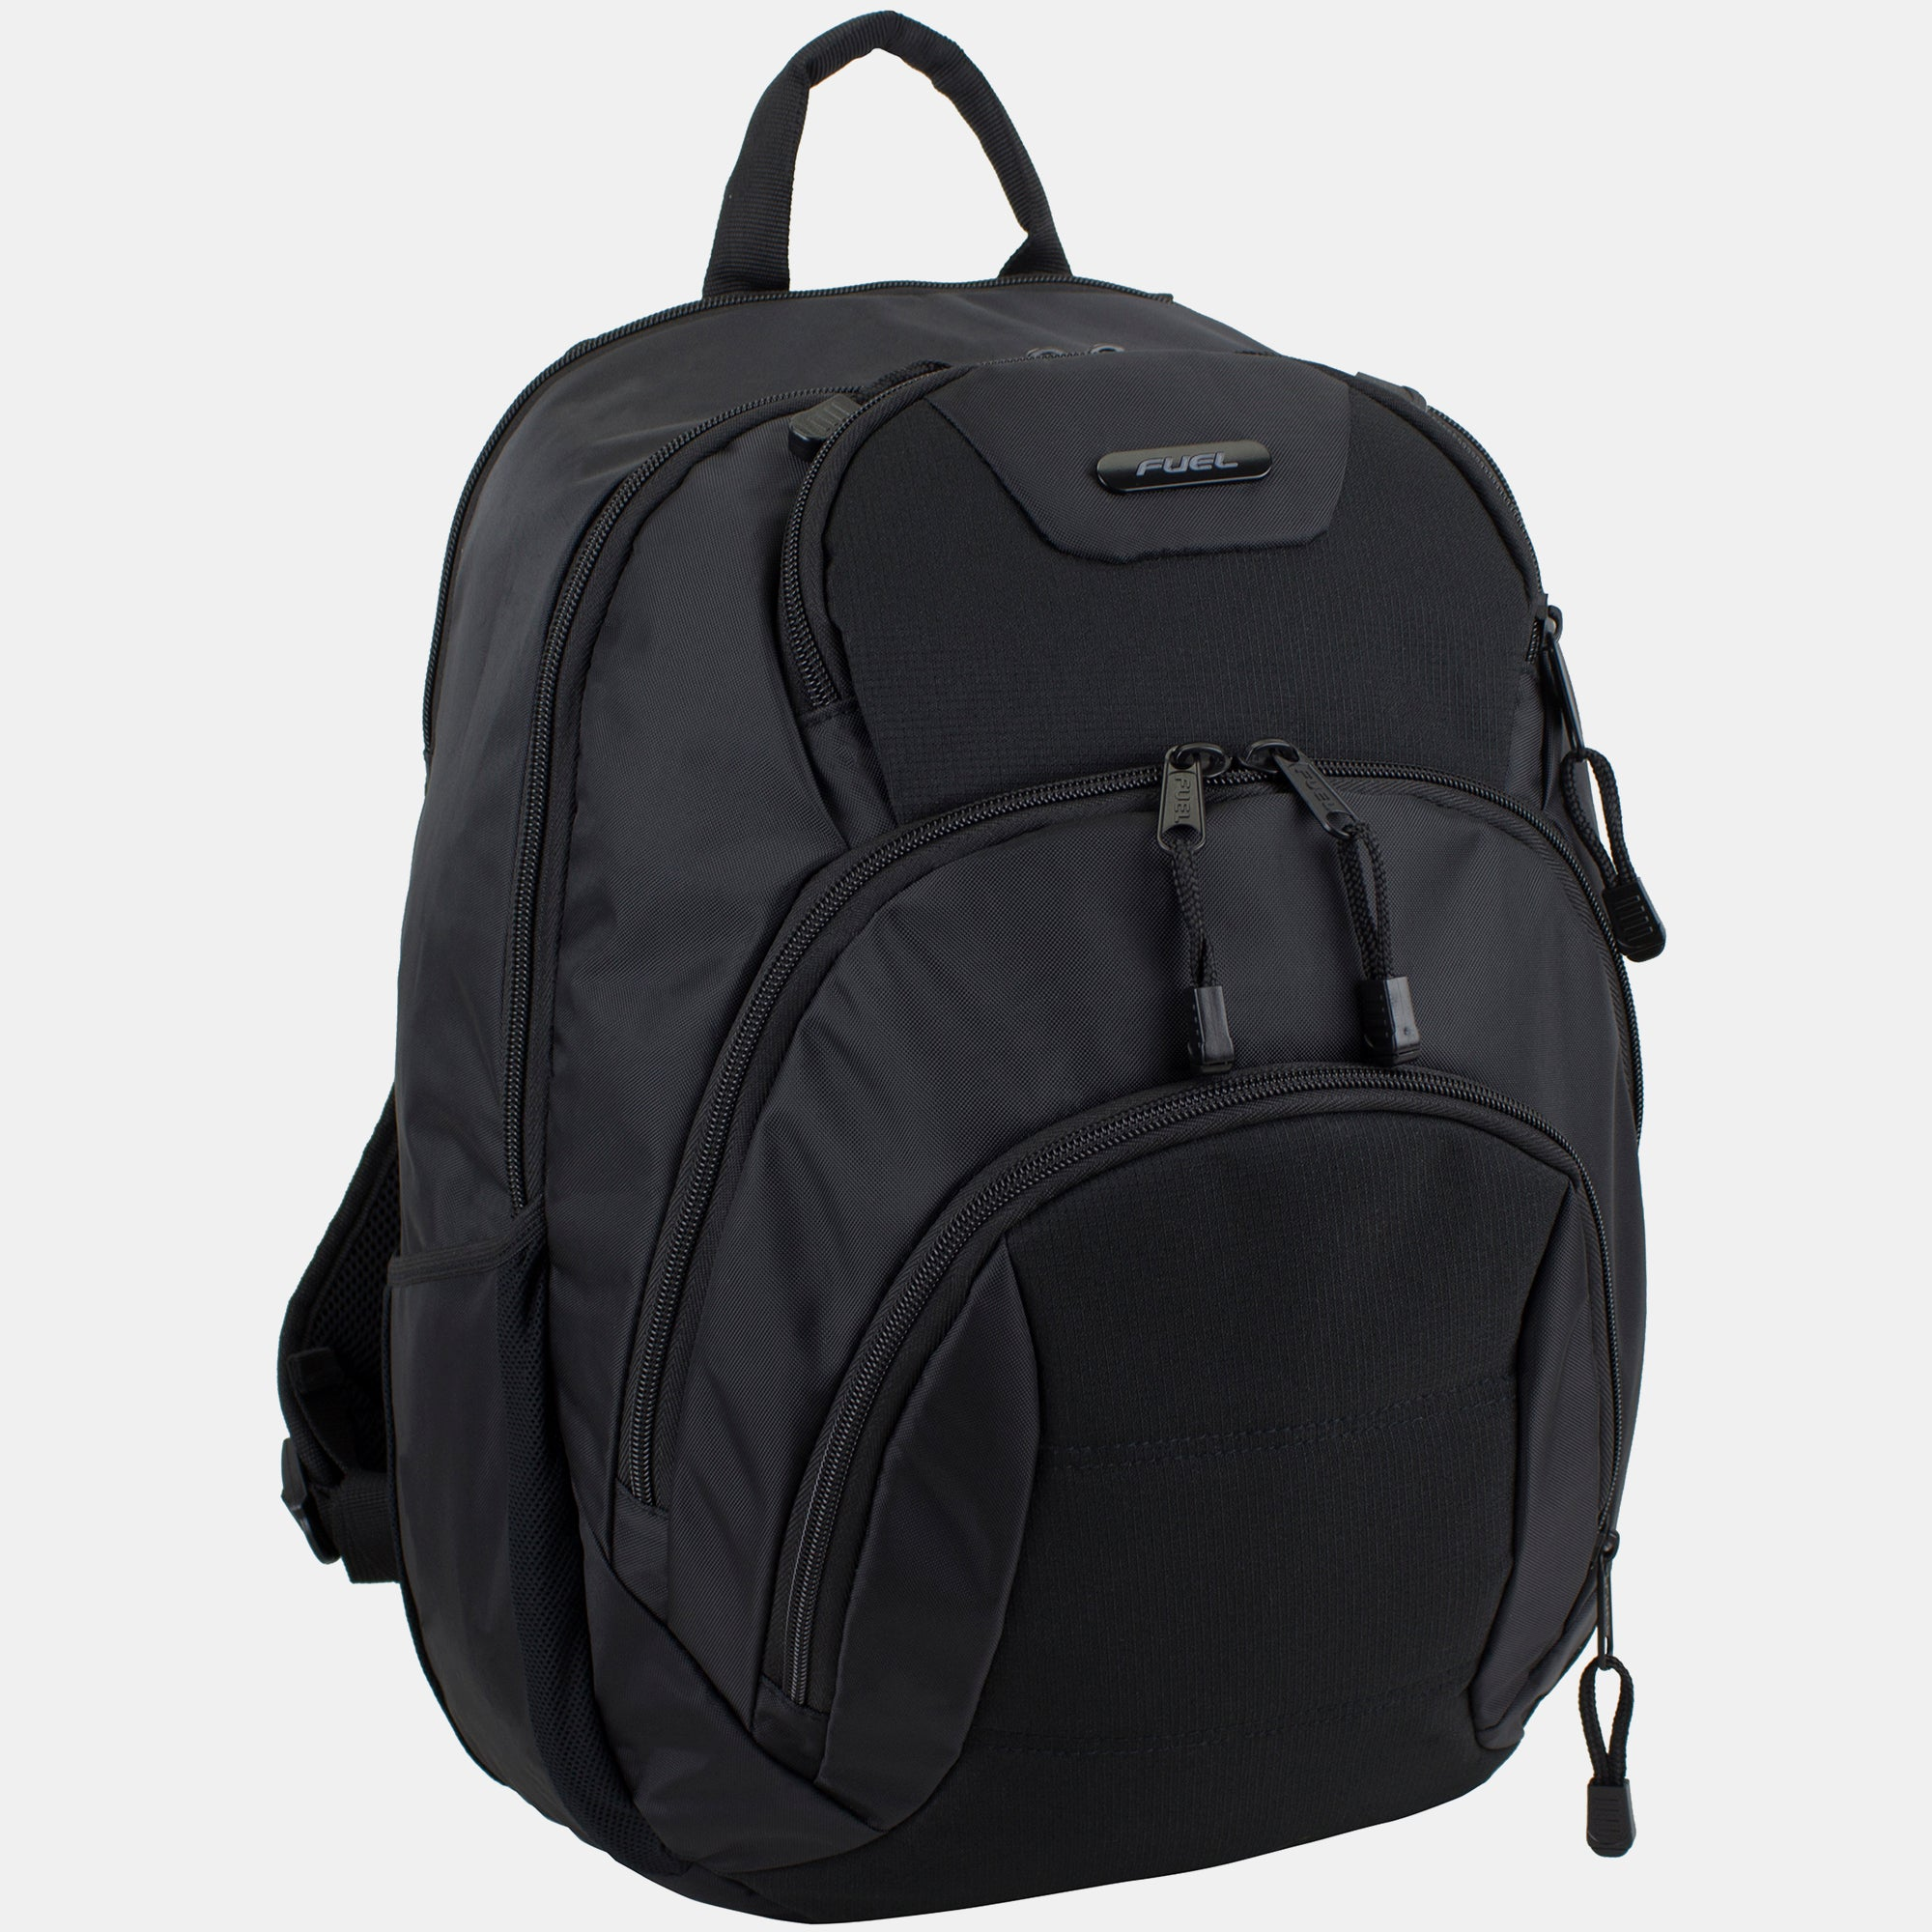 Fuel Tech Backpack With Sporty Edge for School, College, Commute or Travel